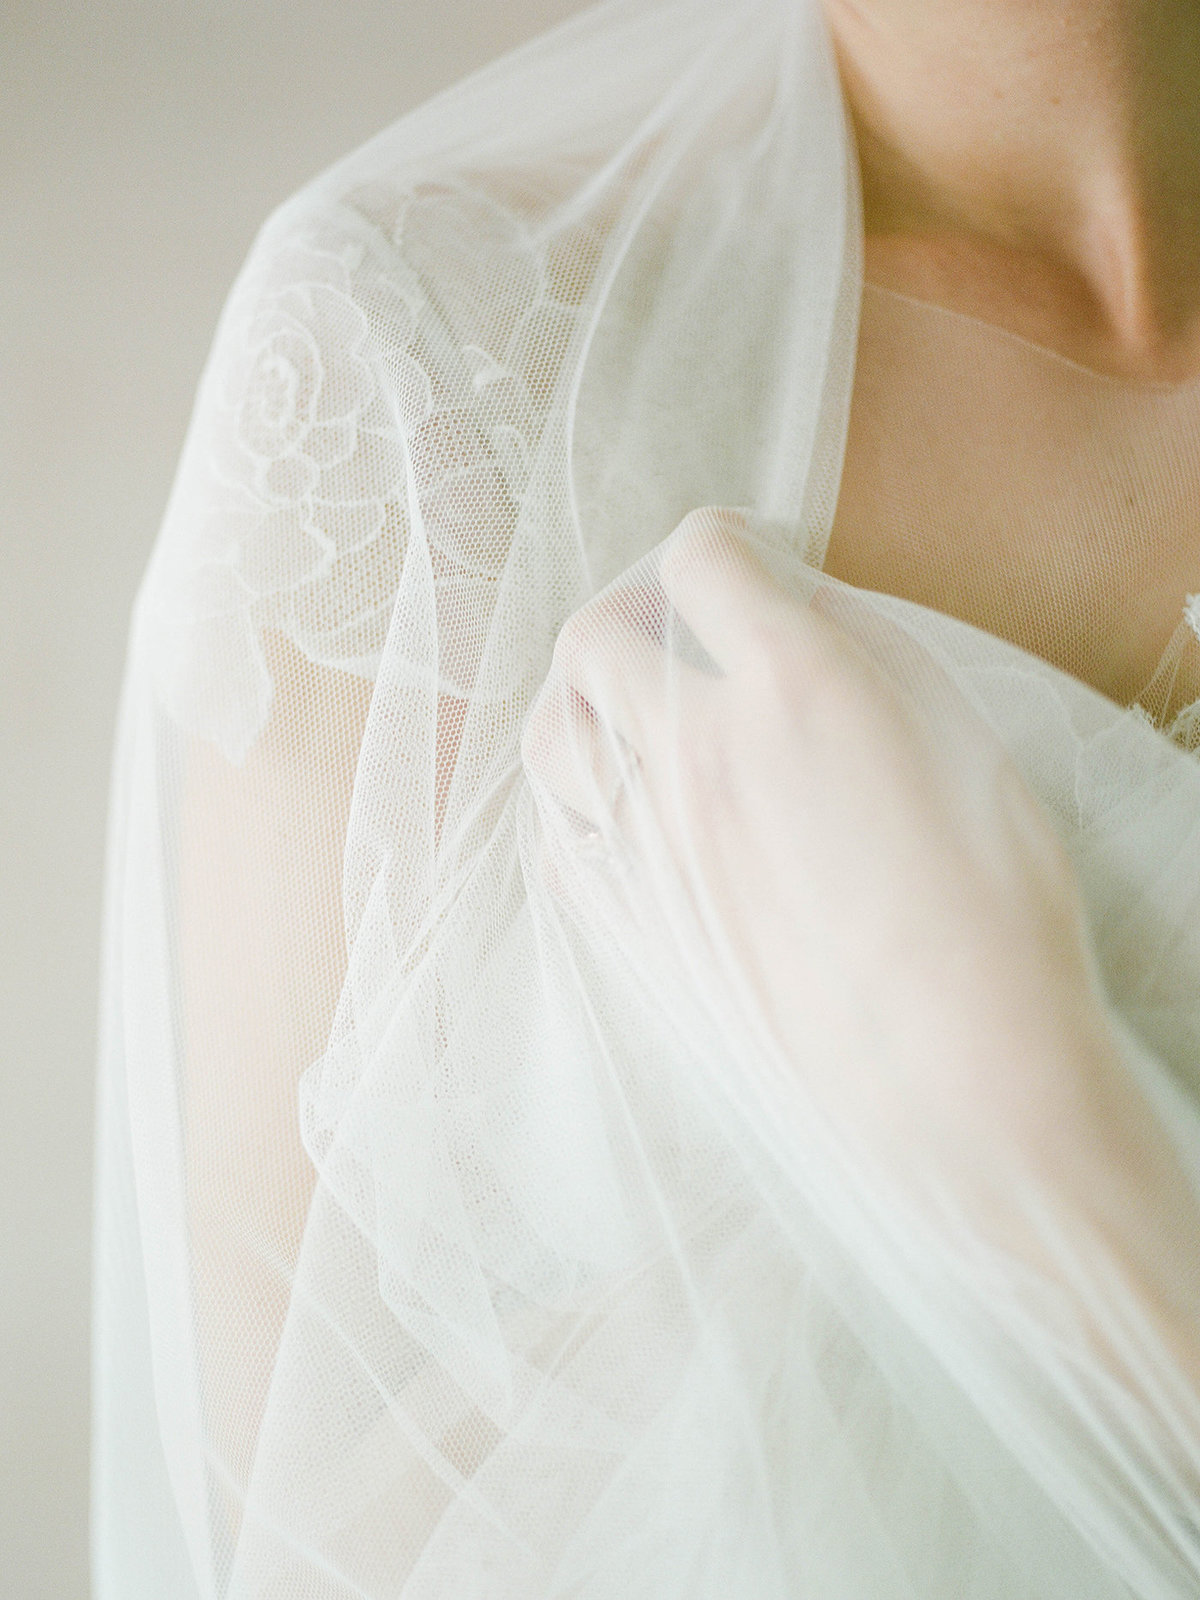 Fine Art Bridal Portraits - Sarah Sunstrom Photography - Film Wedding Photographer - 17